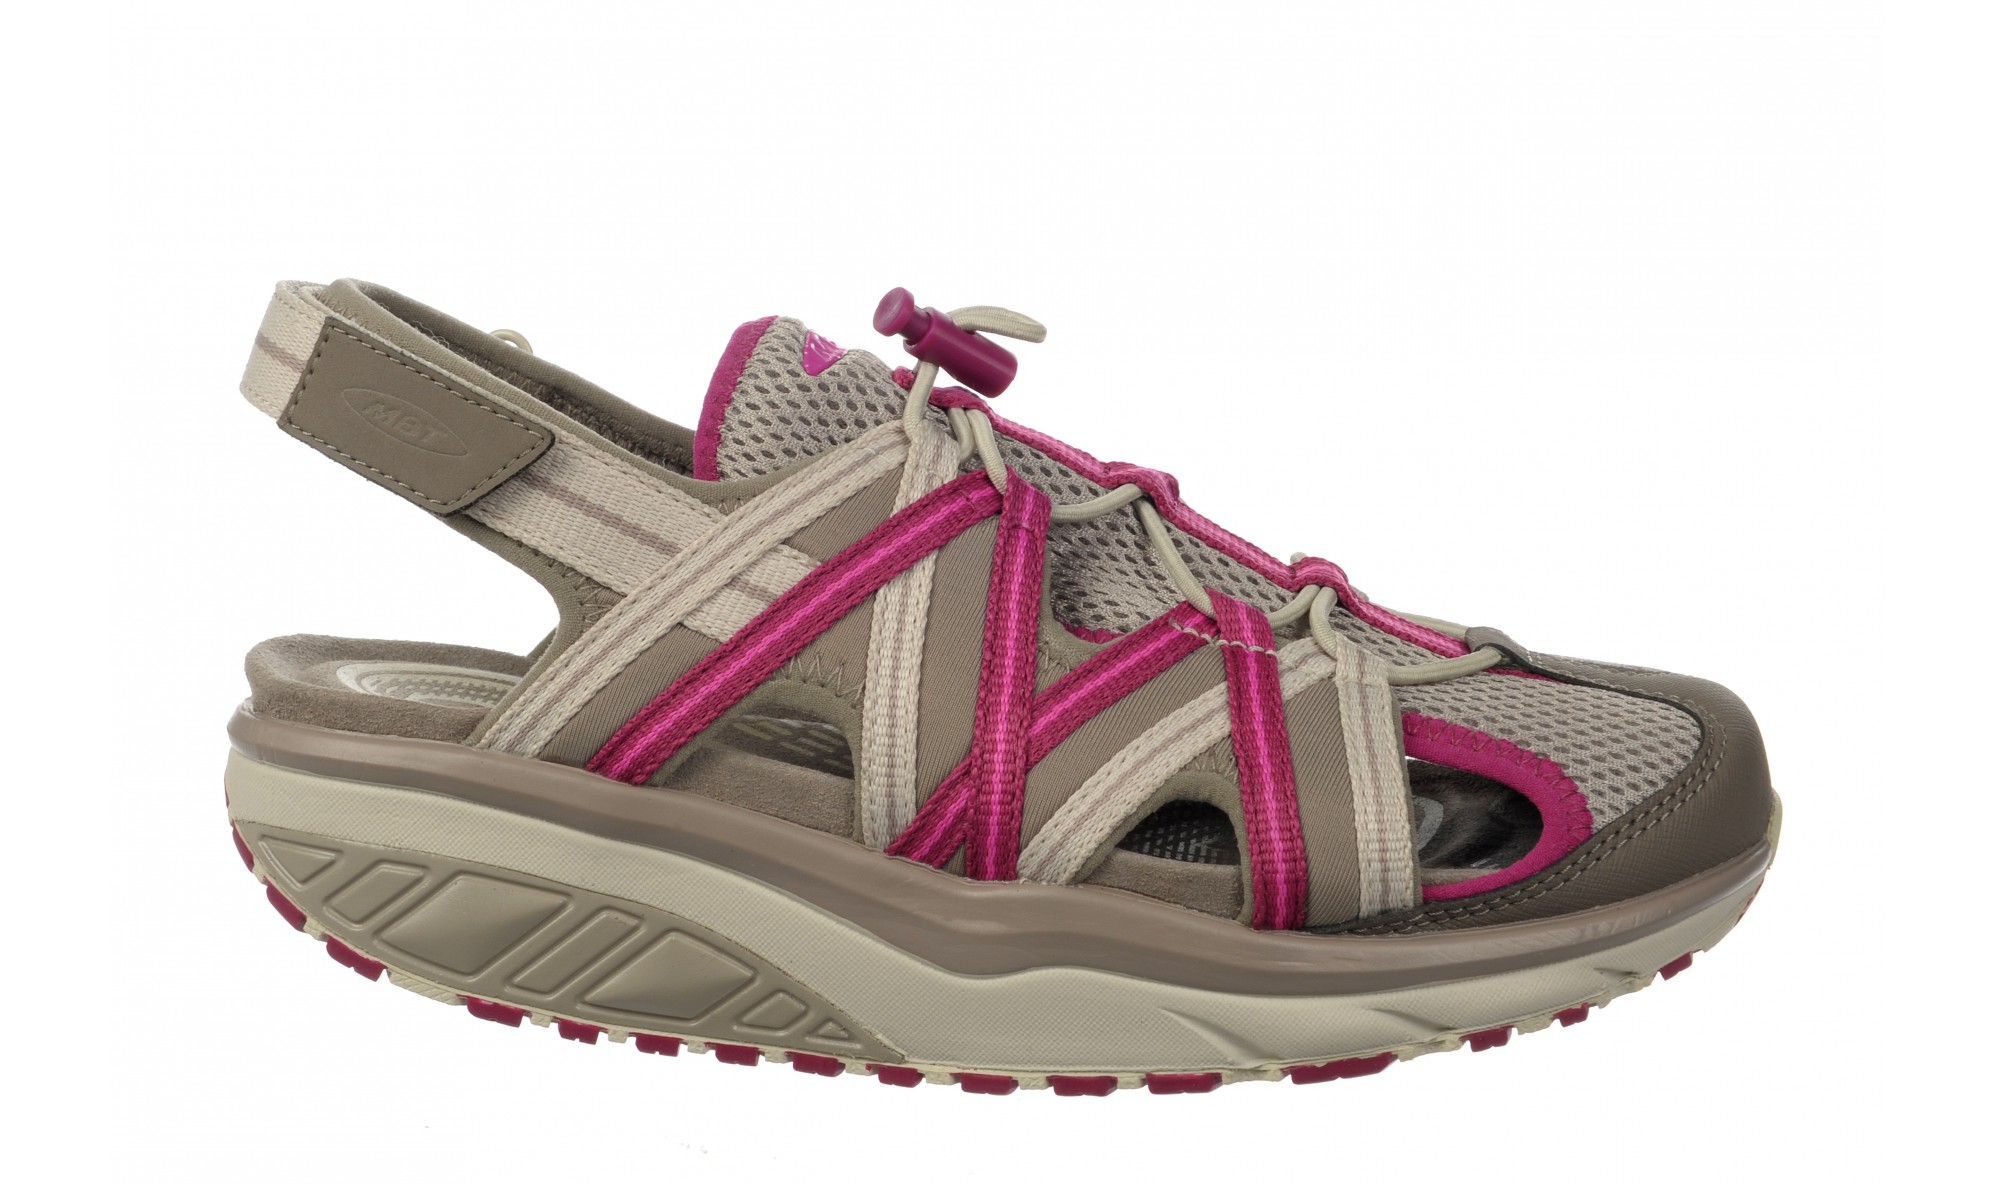 MBT Women's Jasira 6 Trail Sandal Clay Gray / Red Violet